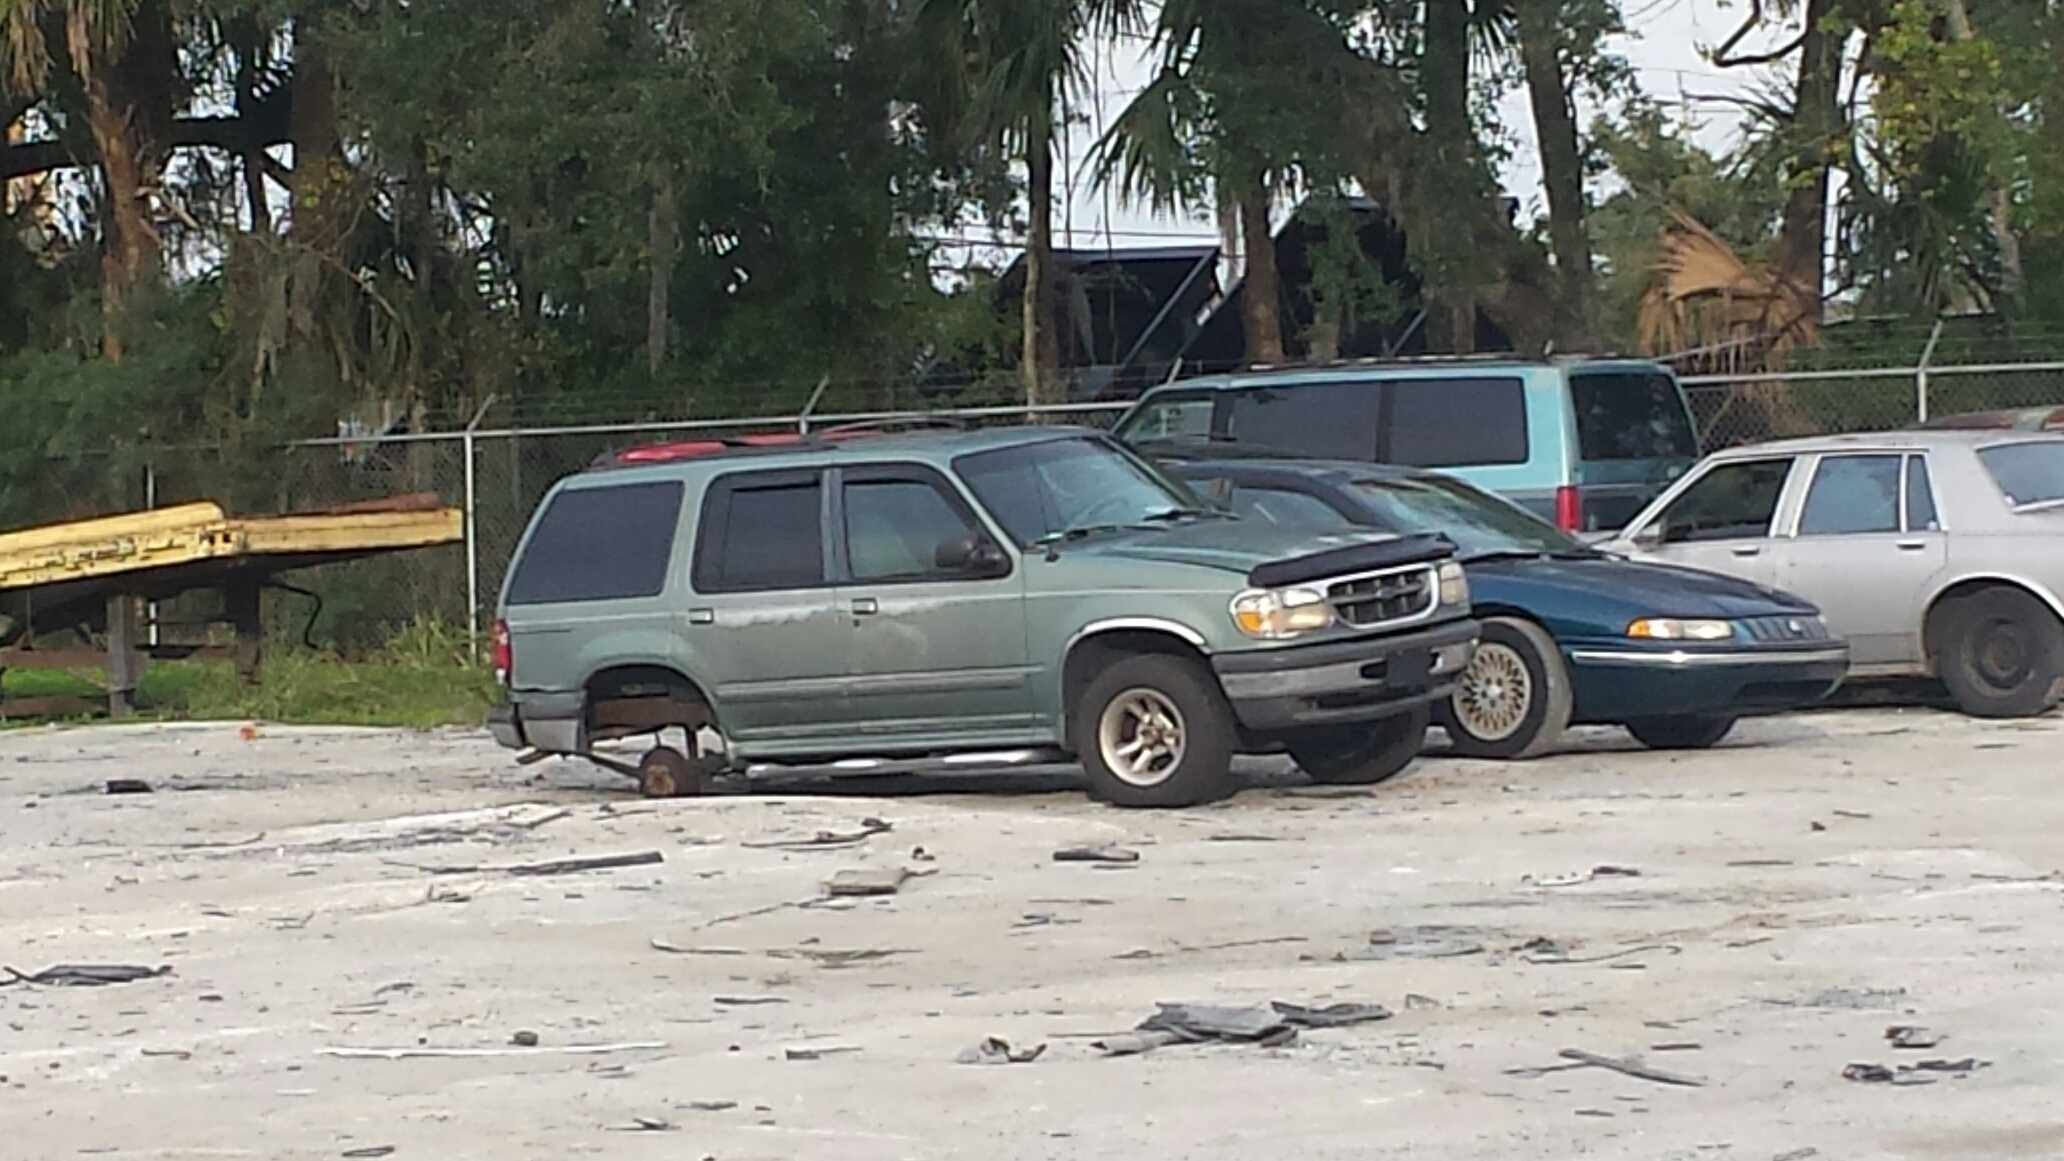 Ford Explorer (Recently Purchased by Junk Cars Orlando, LLC)